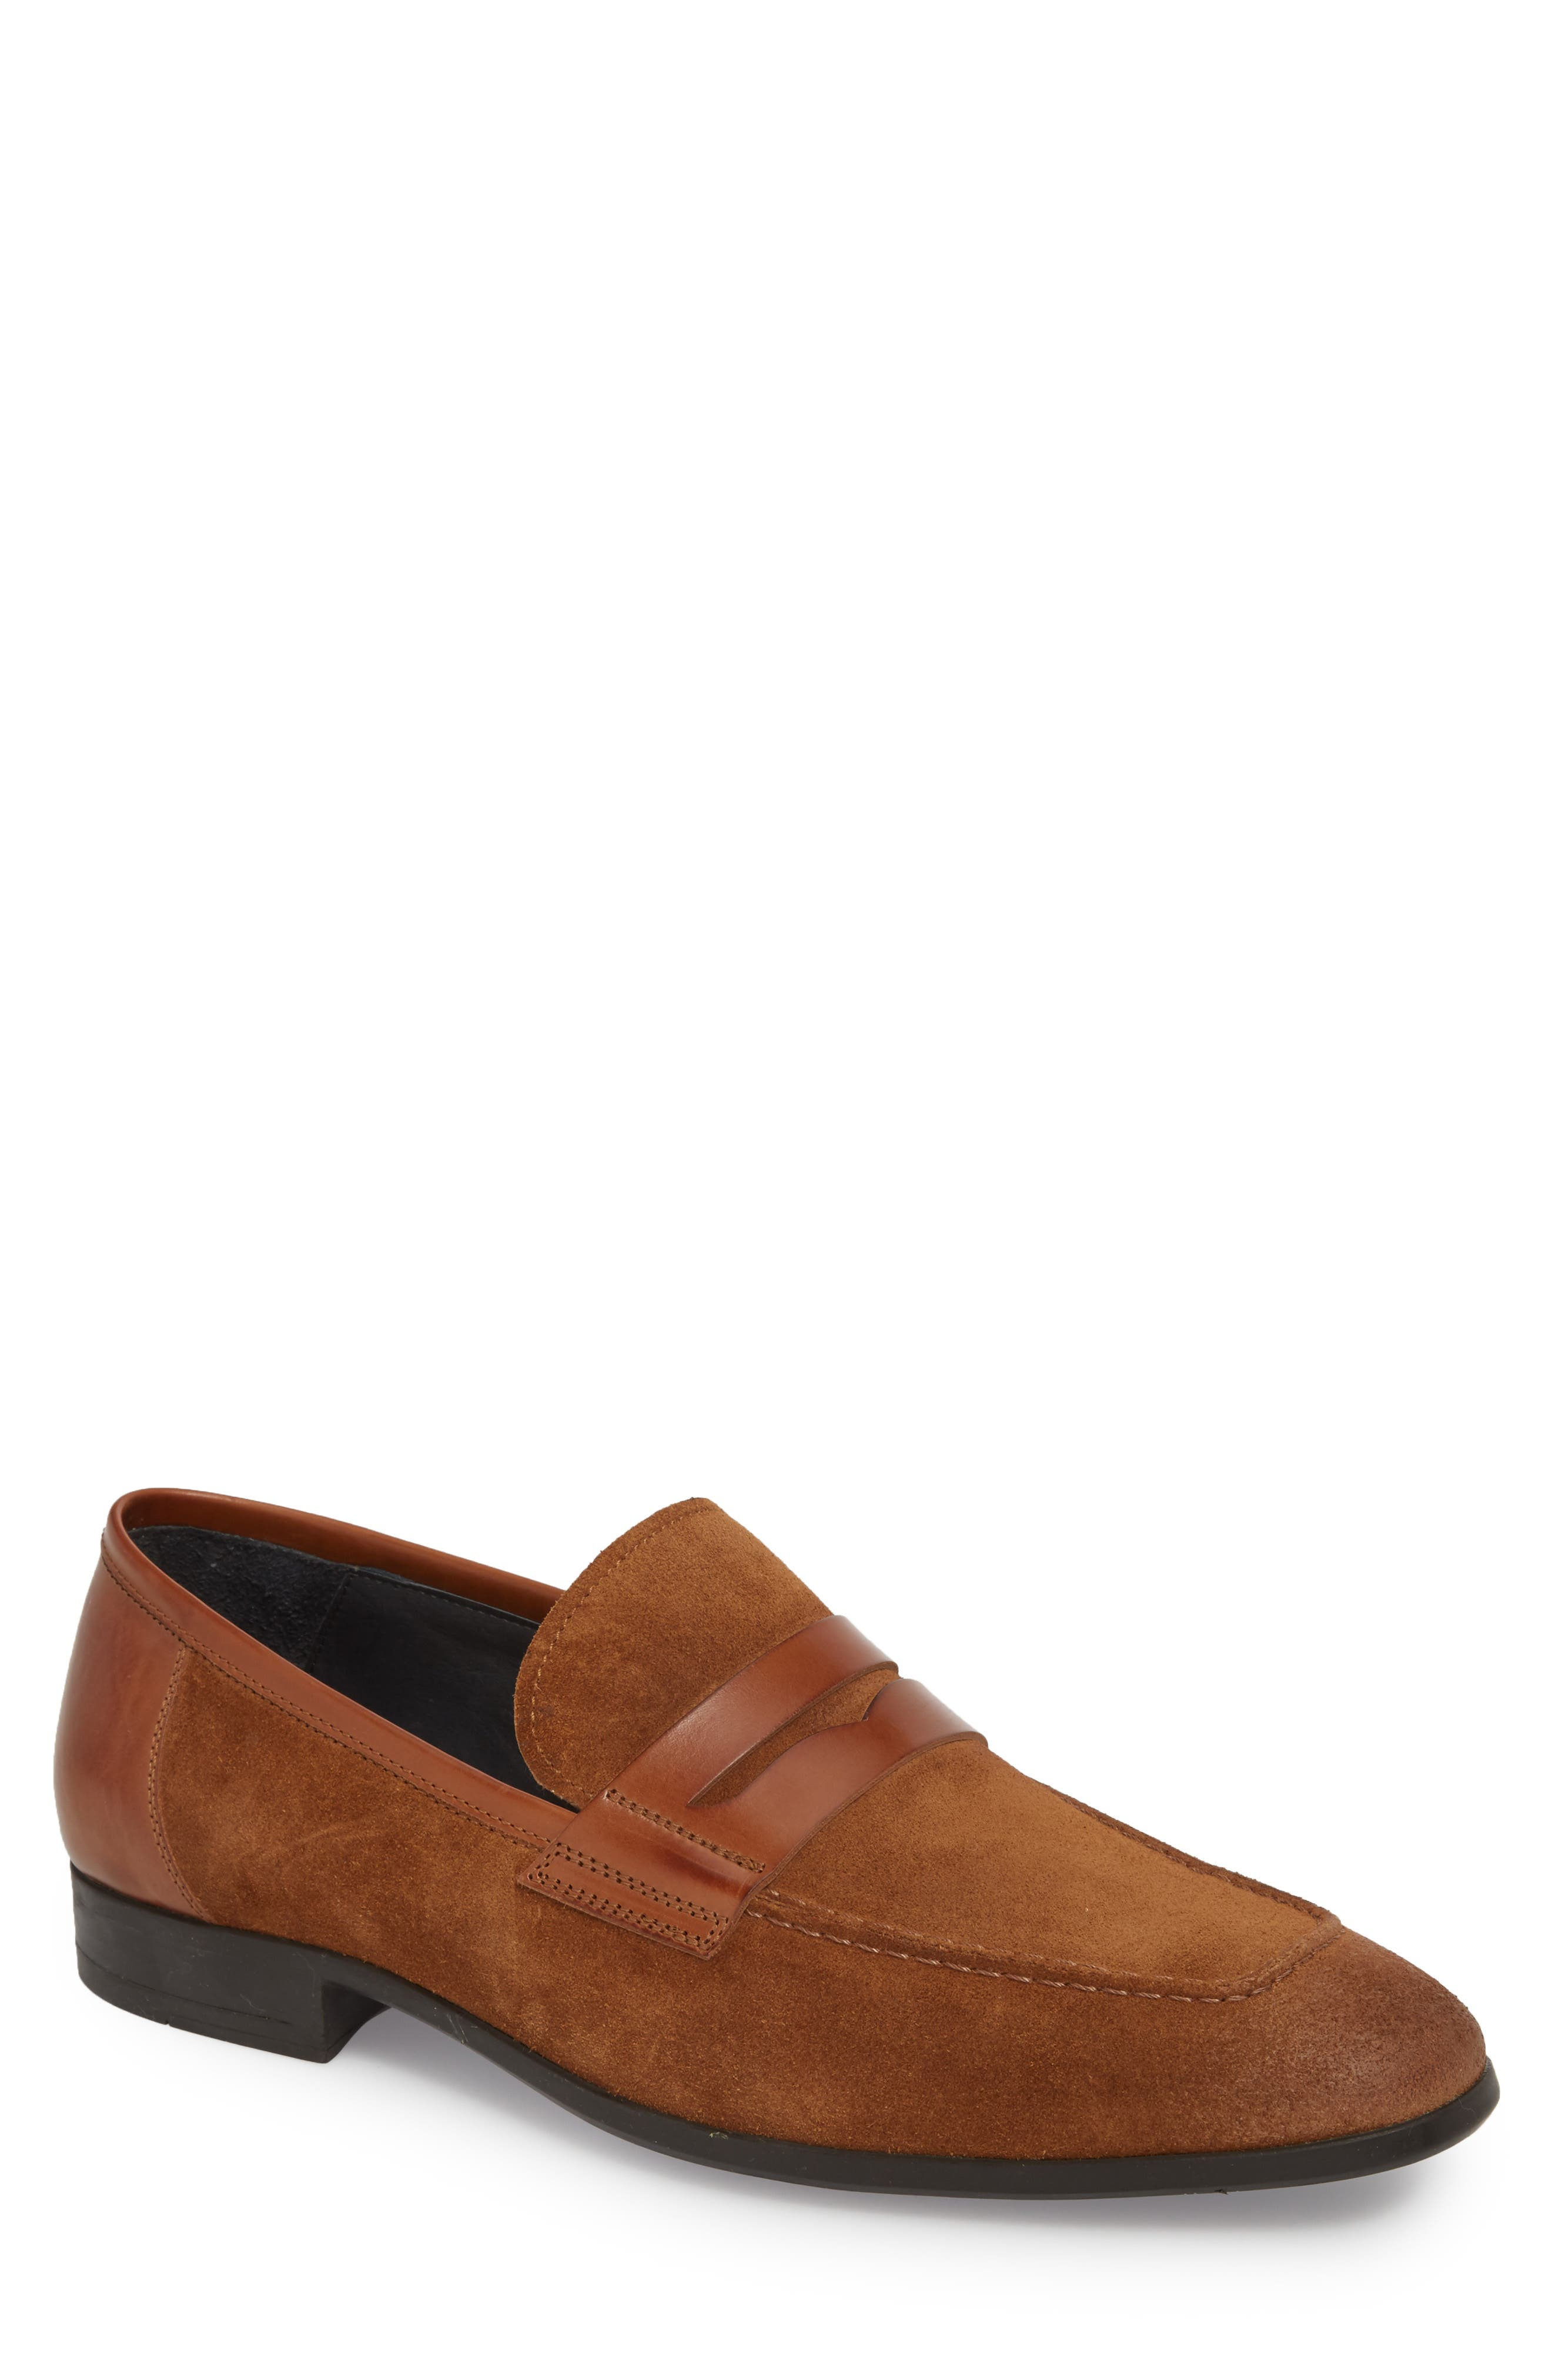 Powell Penny Loafer,                         Main,                         color, Cognac/ Tan Suede